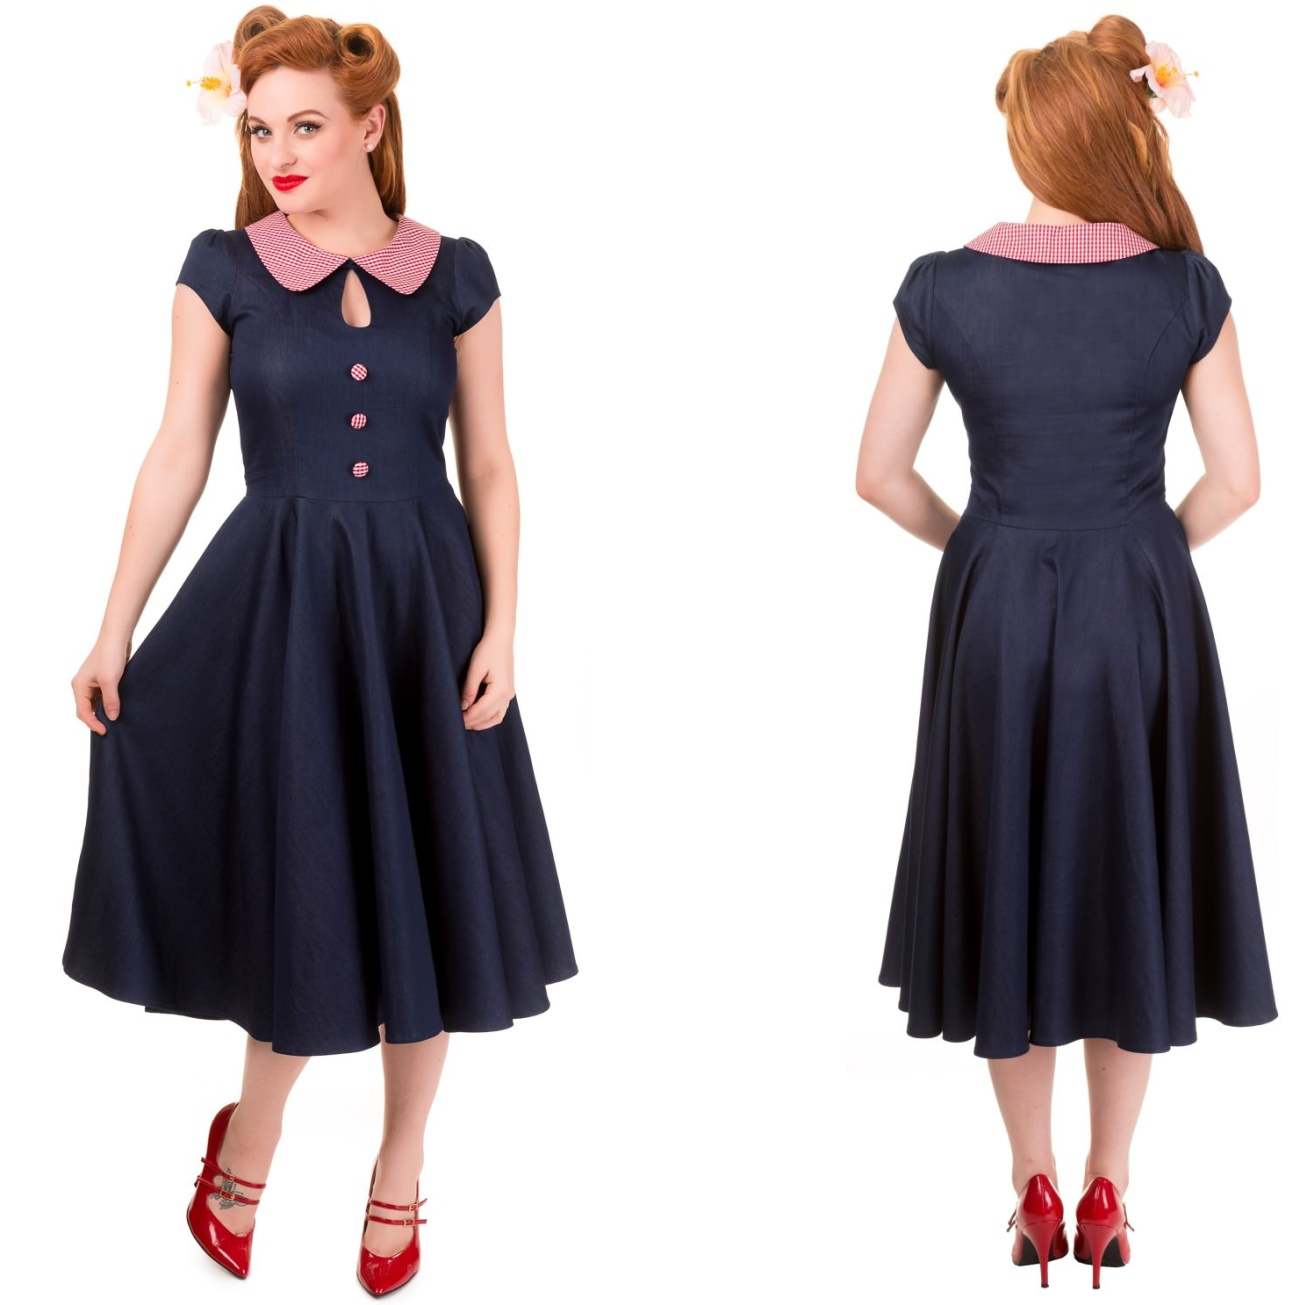 Blueberry Hill Dress Rock n Roll Kleid Banned - Banned Kleider ...